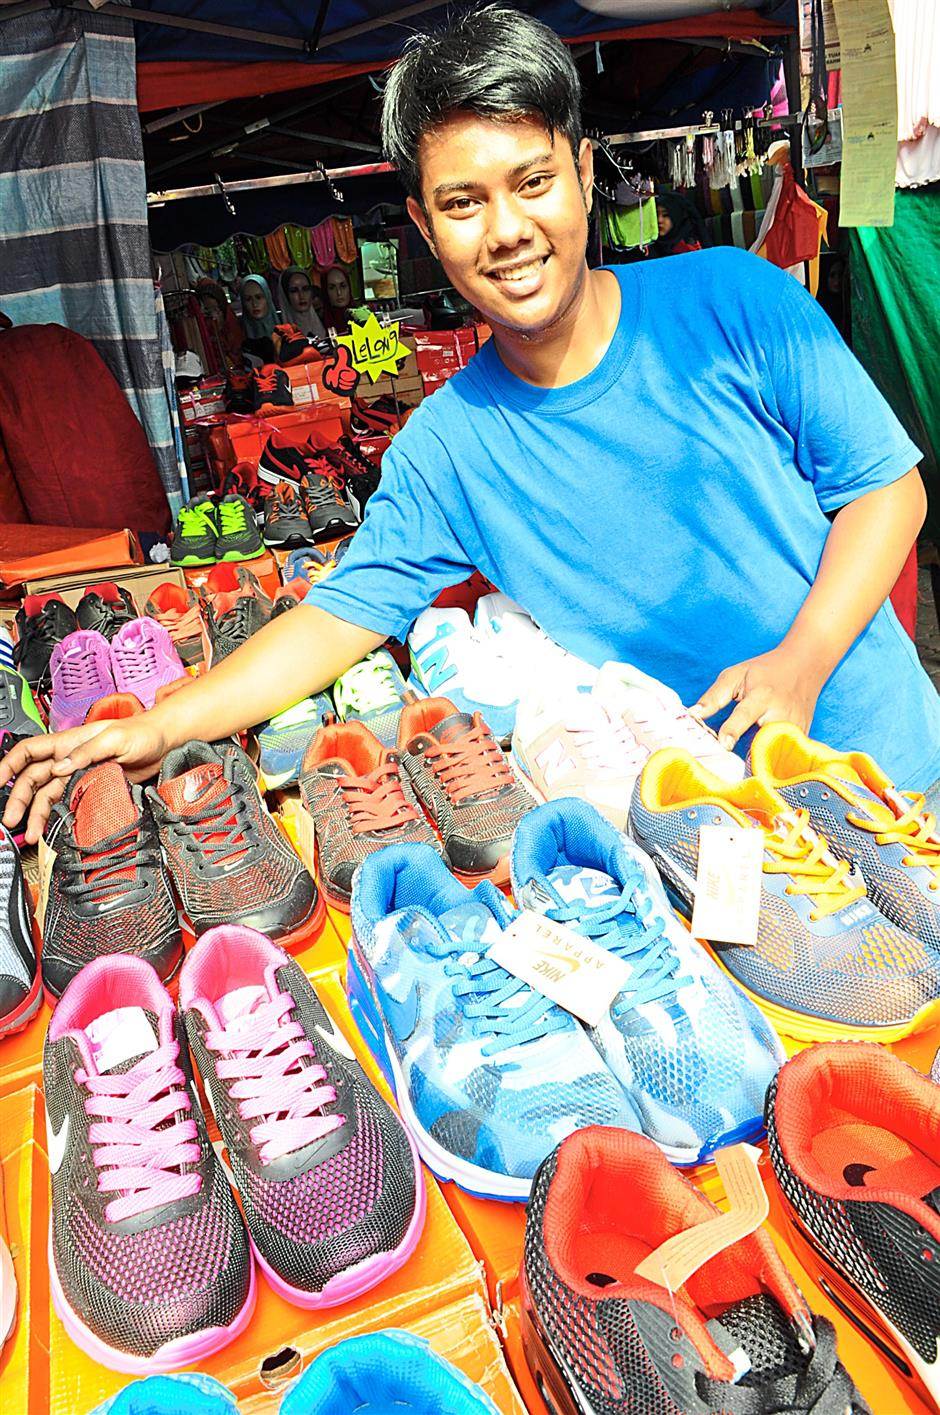 Drumming up a good sale goes back to being honest, says Shairzul Hairee.